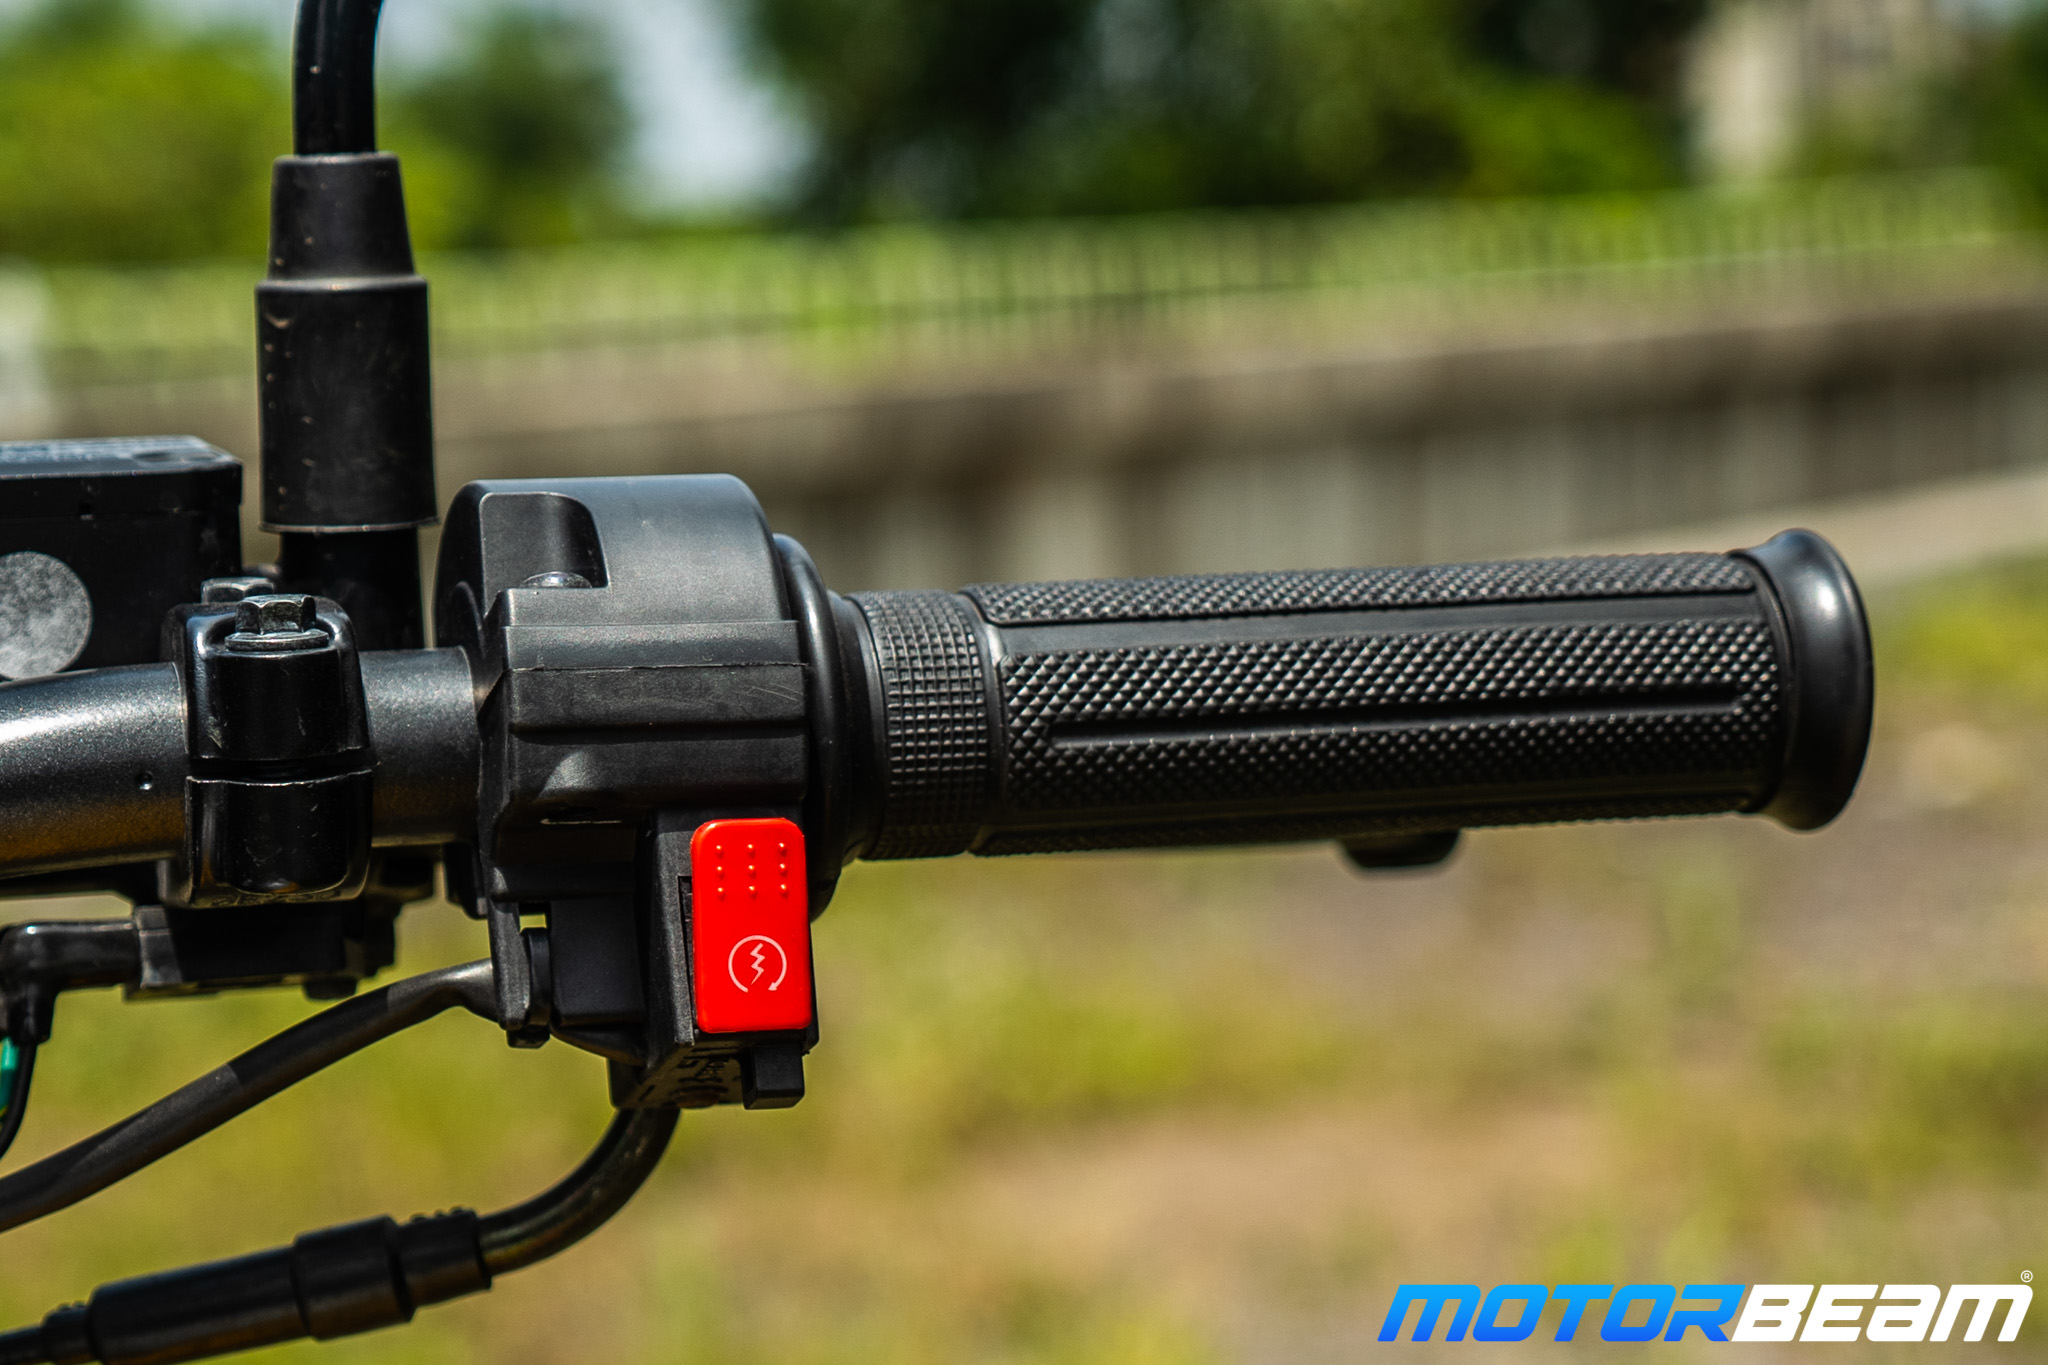 2020 Hero Passion Pro Review 28